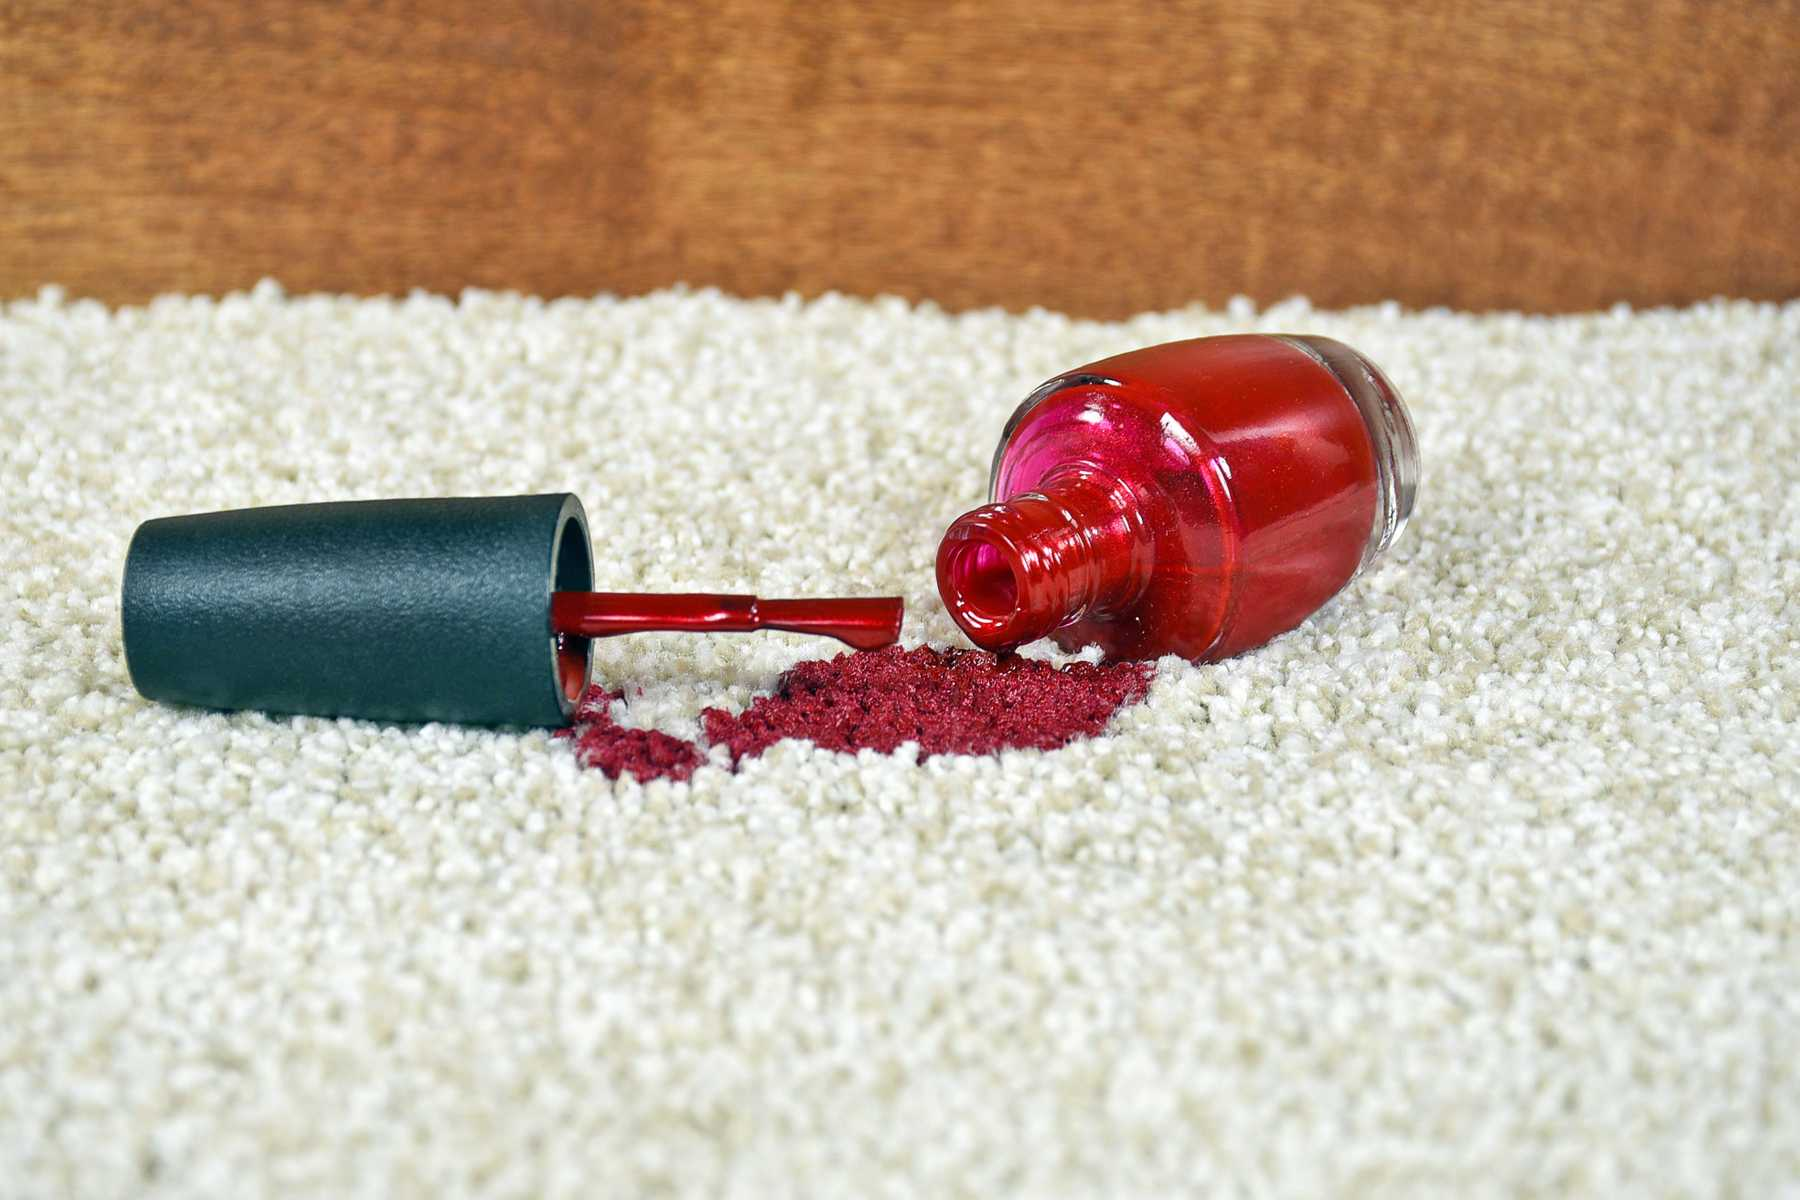 Quick Guide: How To Get Finger Nail Polish Out Of Carpet?